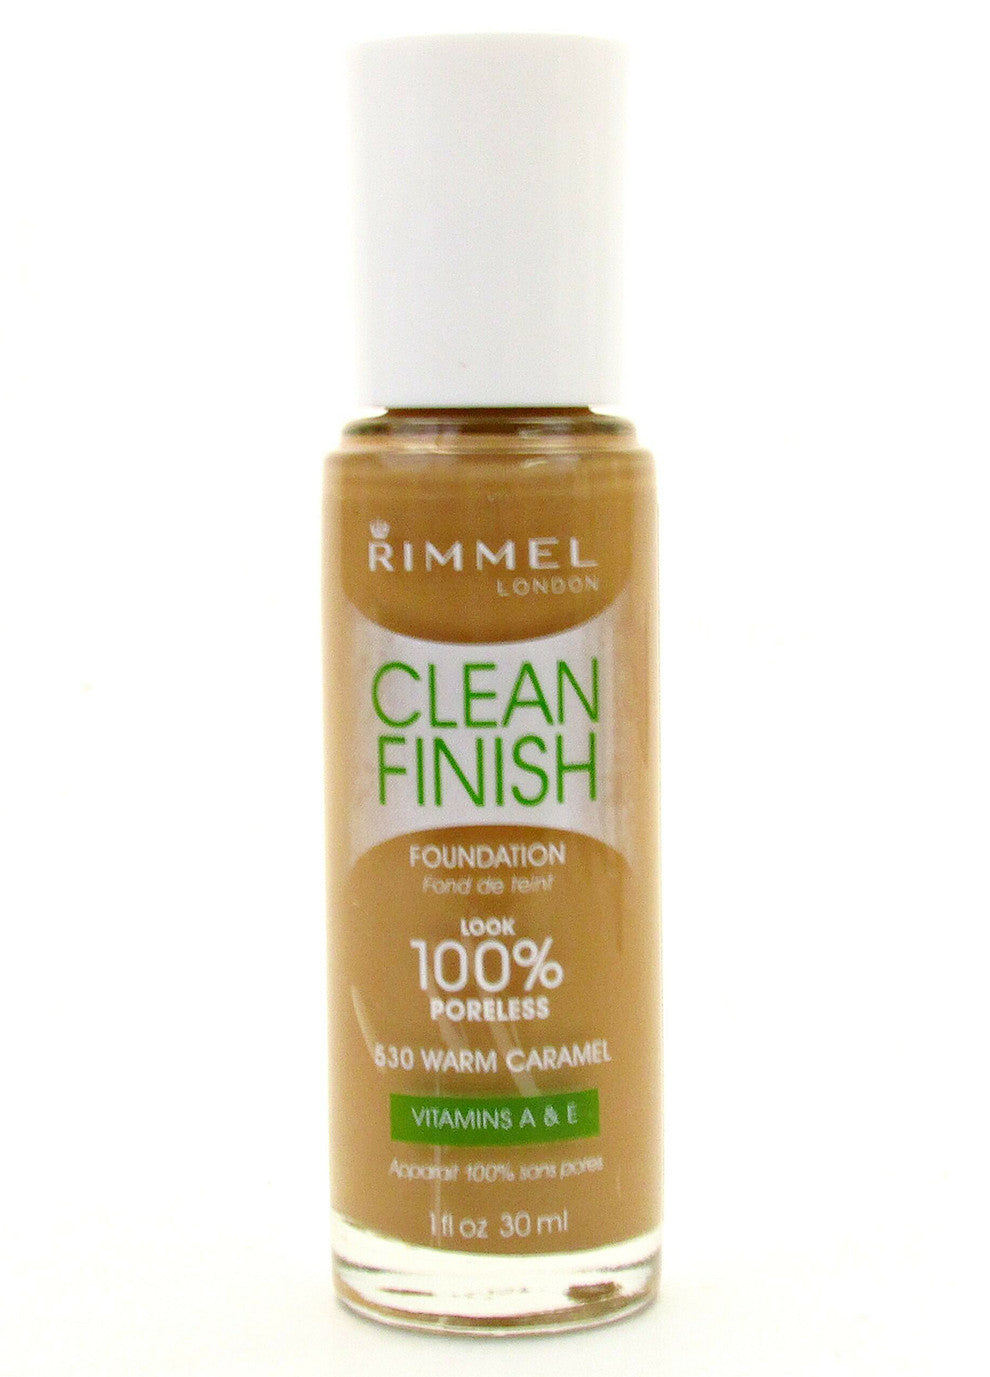 Rimmel Clean Finish Foundation #530 Warm Caramel